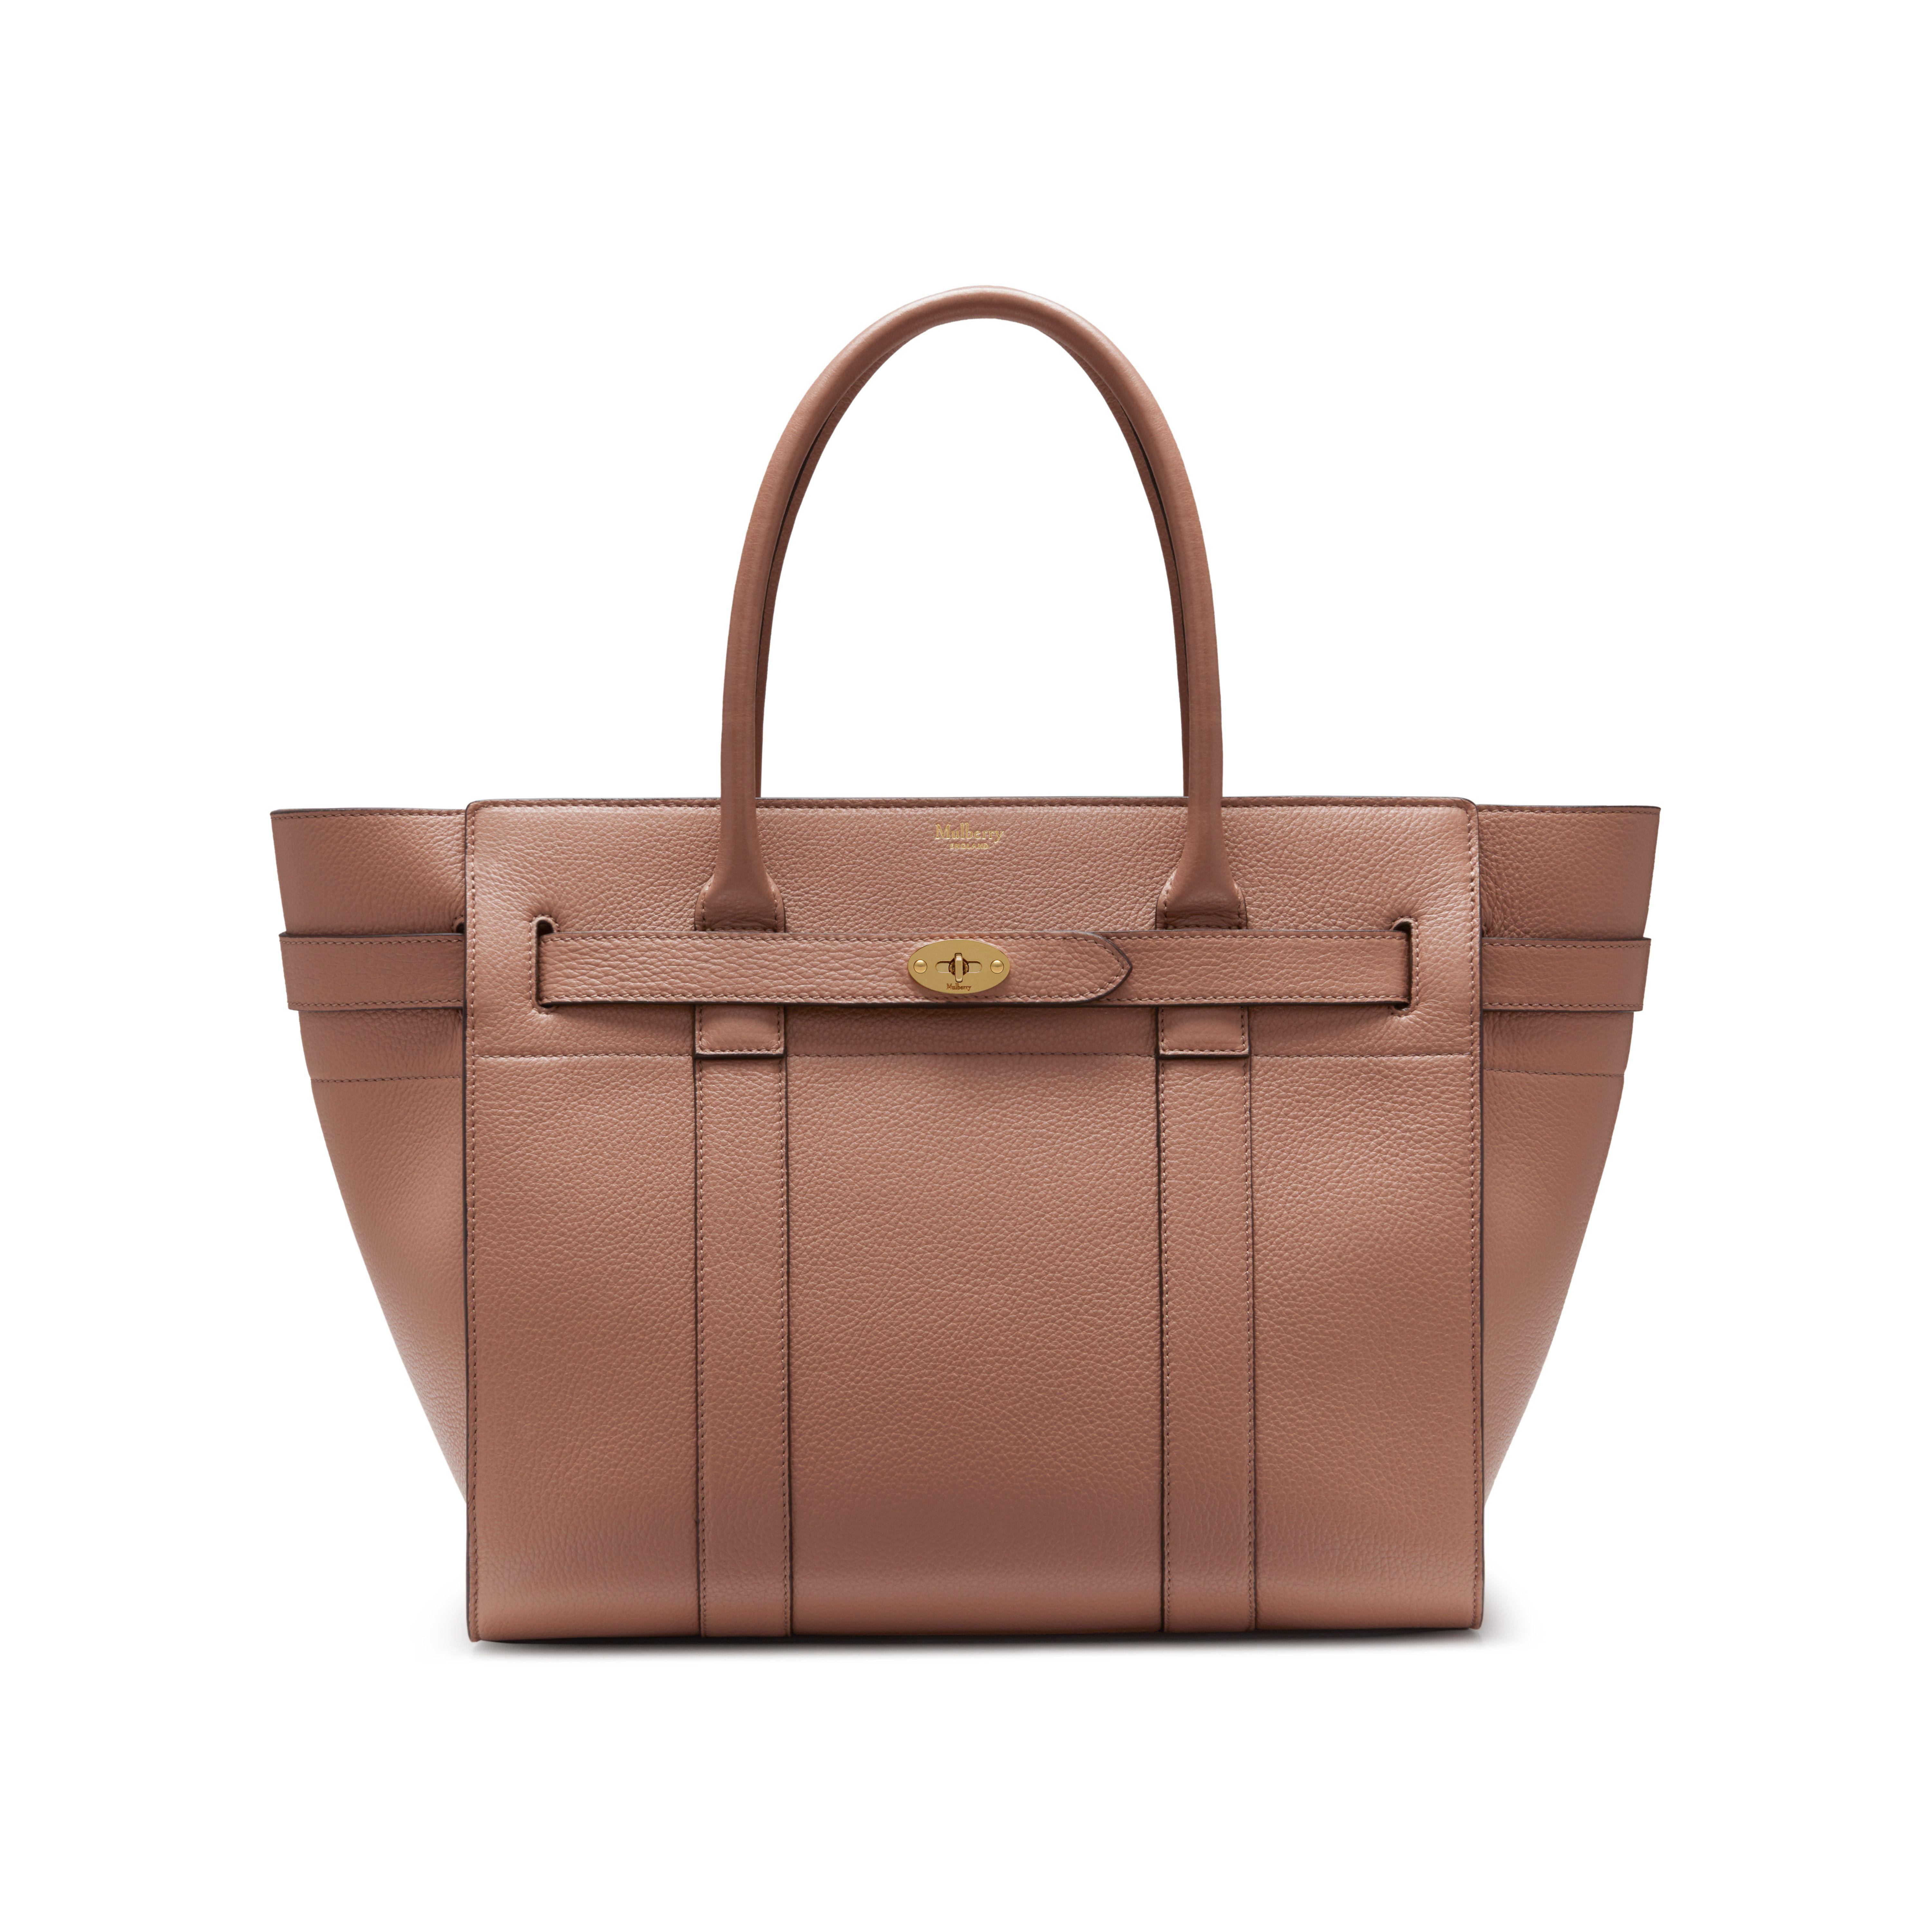 9aa9fc7d02 ... chocolate brown leather guaranteed authentic designer bags uk d5140  fc686; coupon code for mulberry brown zipped bayswater lyst. view  fullscreen 47ca8 ...